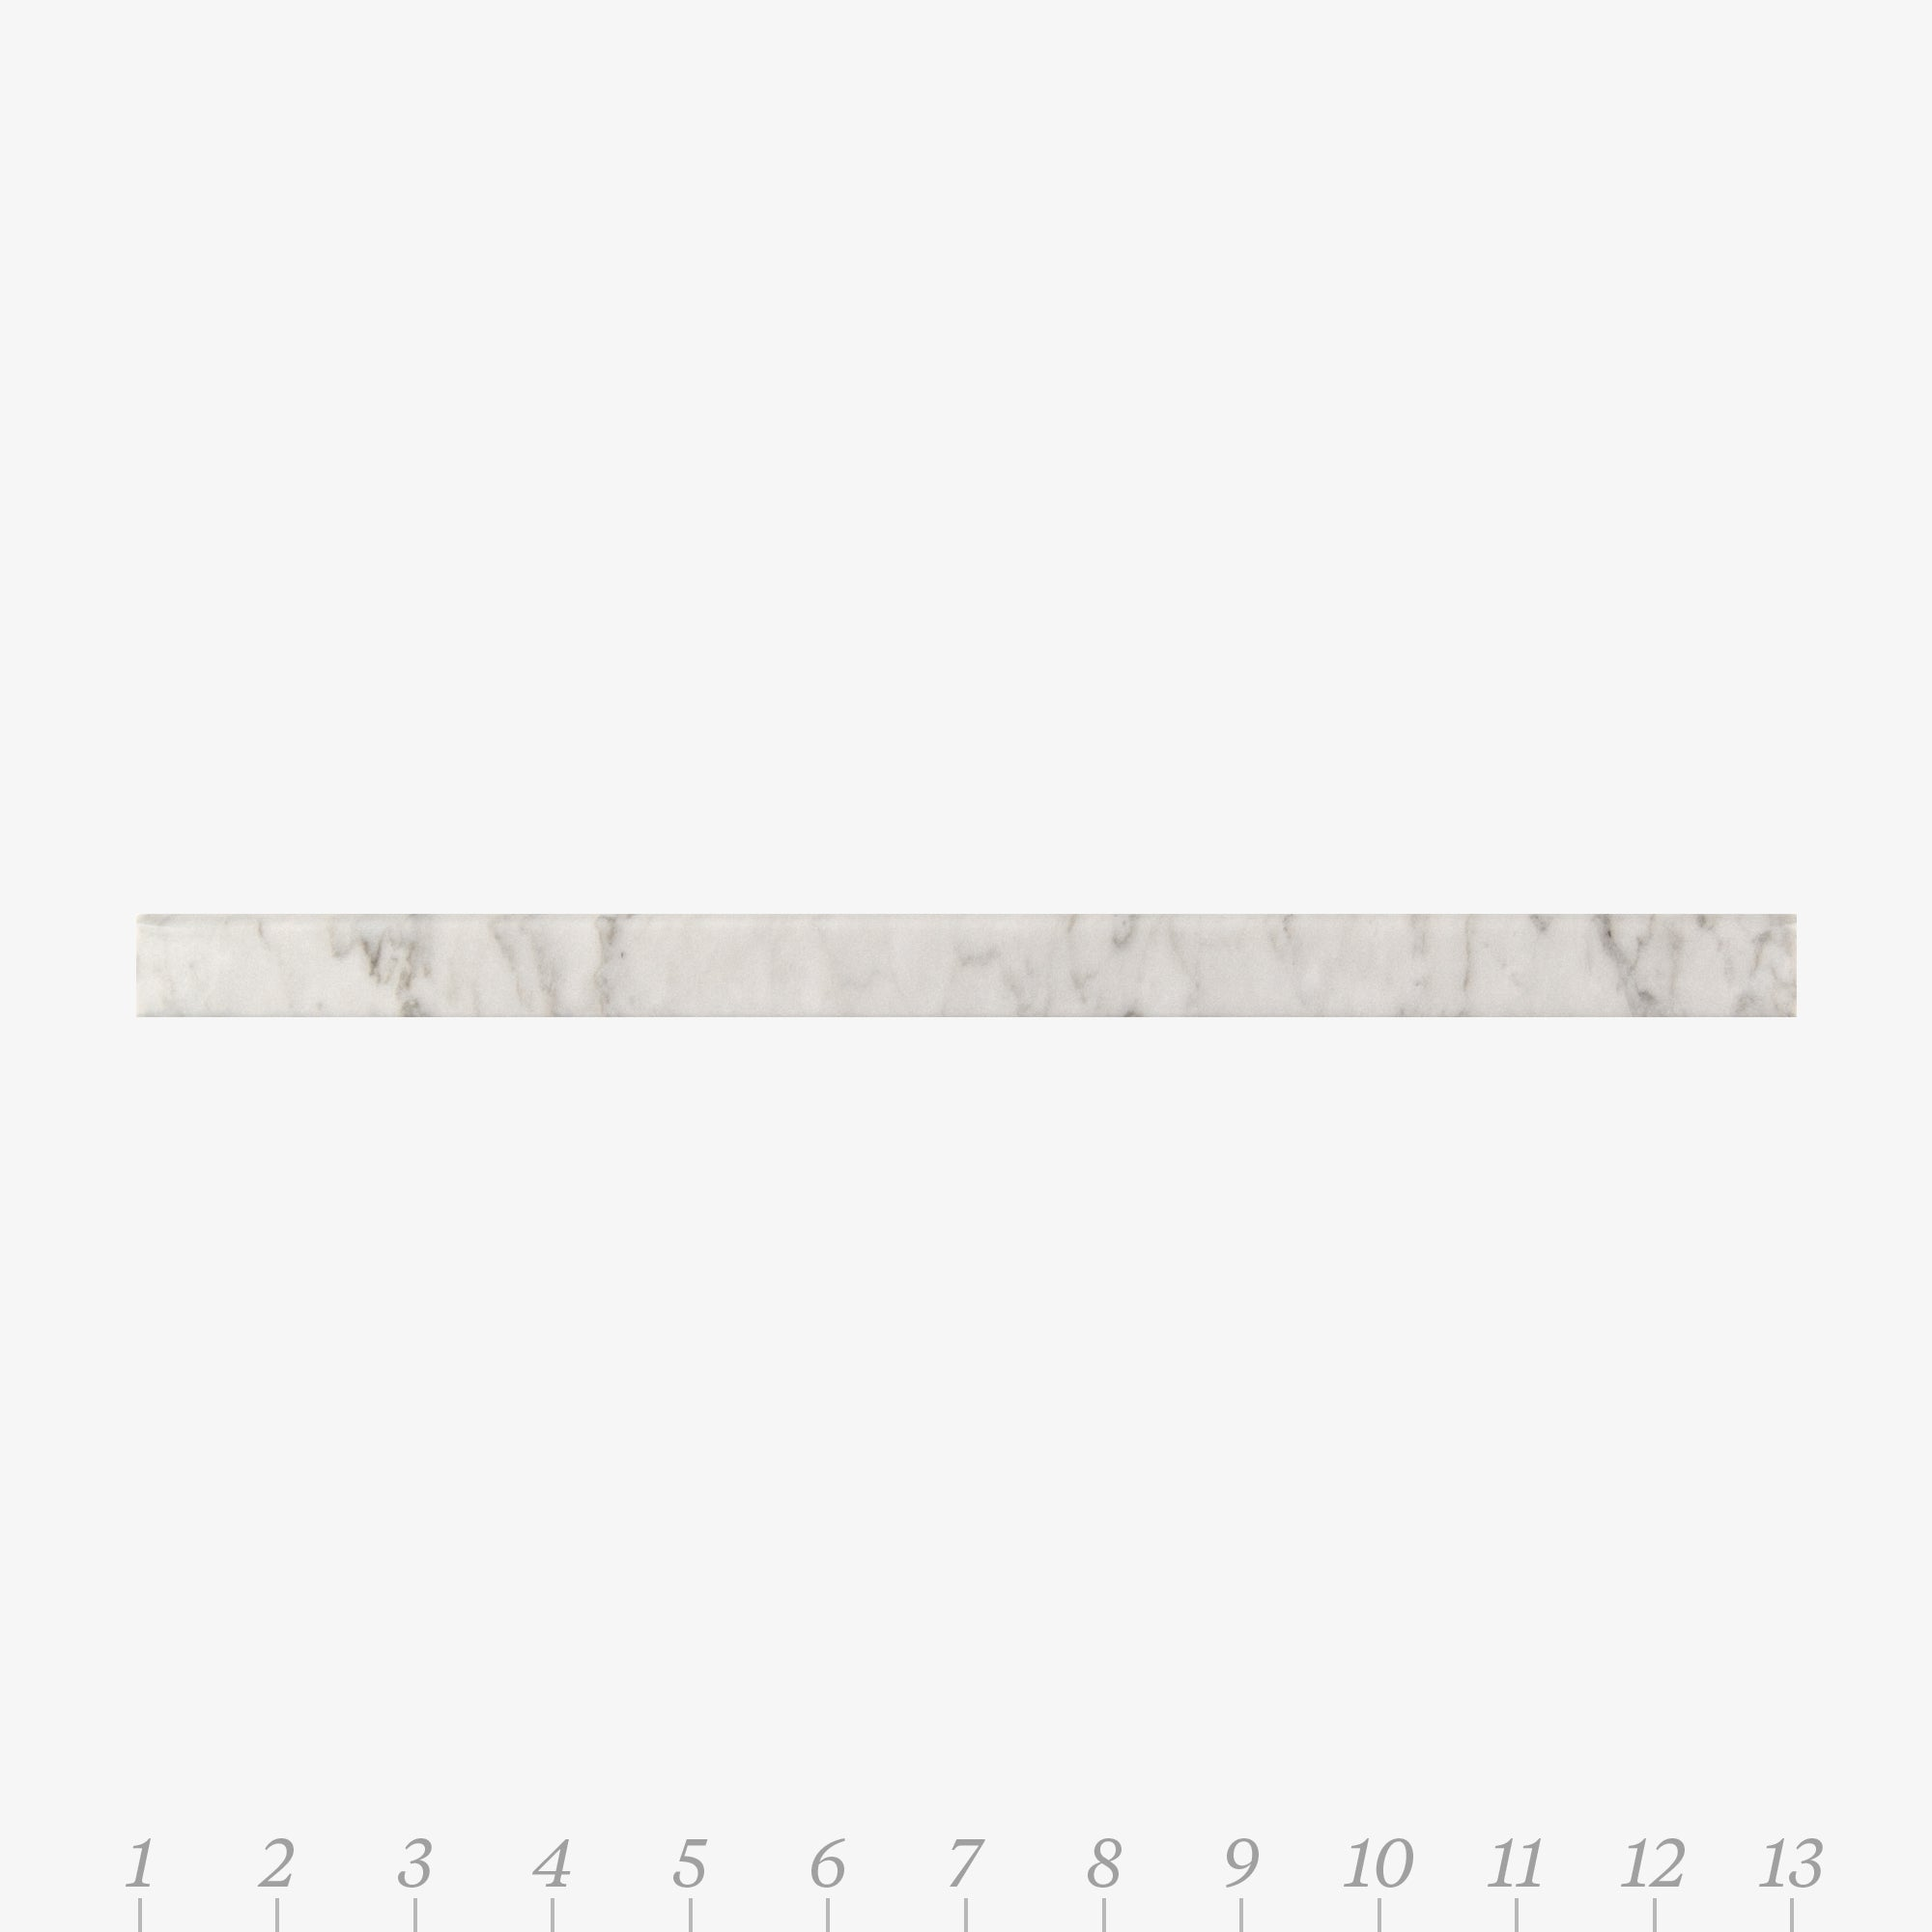 Chelsea 1 Bianco Carrara Marble Swatch Card  Honed Samples Liner product photo